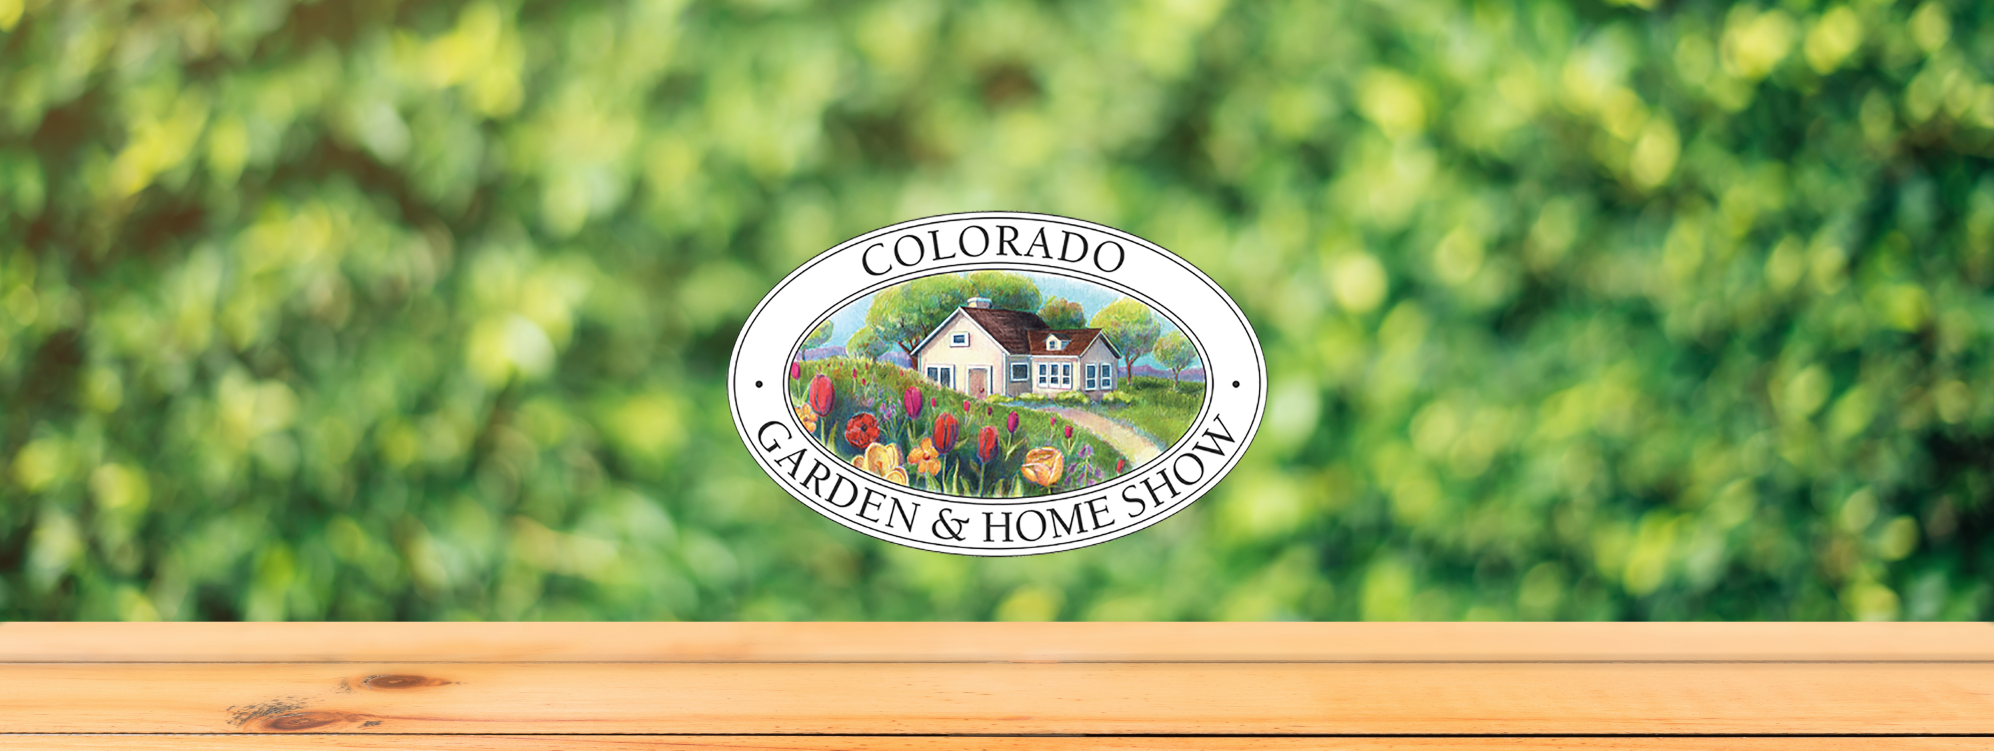 Colorado Garden Home Show 2018 Gardening And Home Improvement